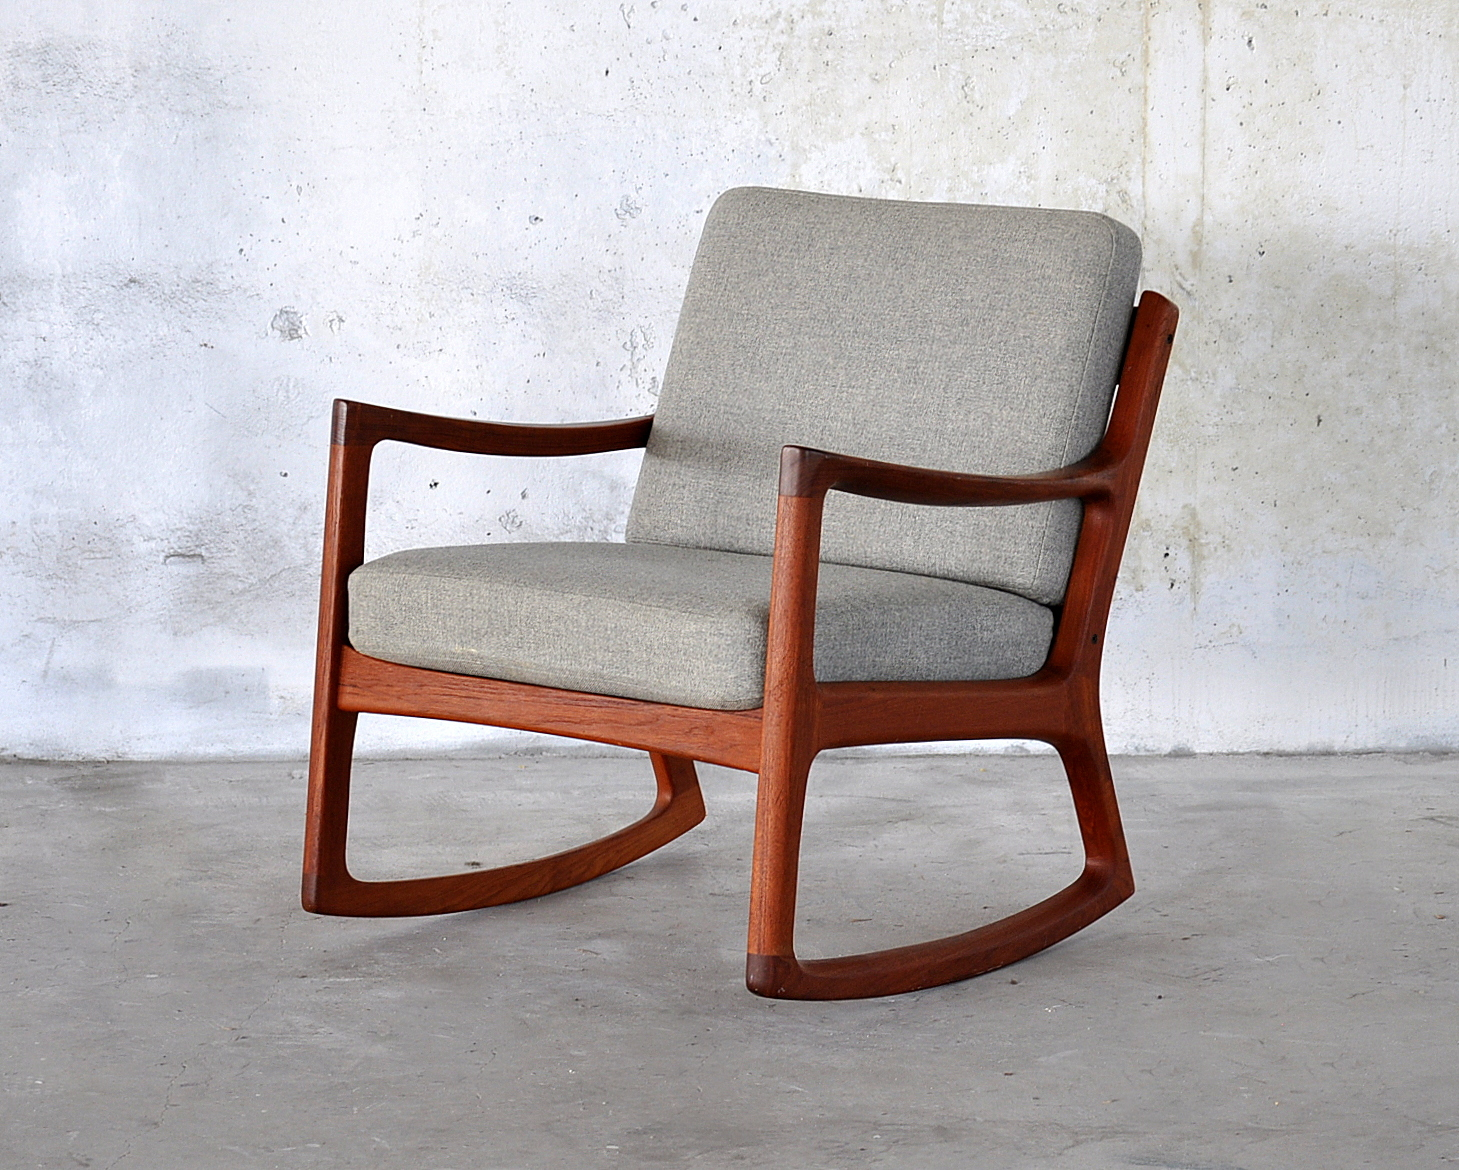 Image Result For Rocking Chairs For Sale In Uk